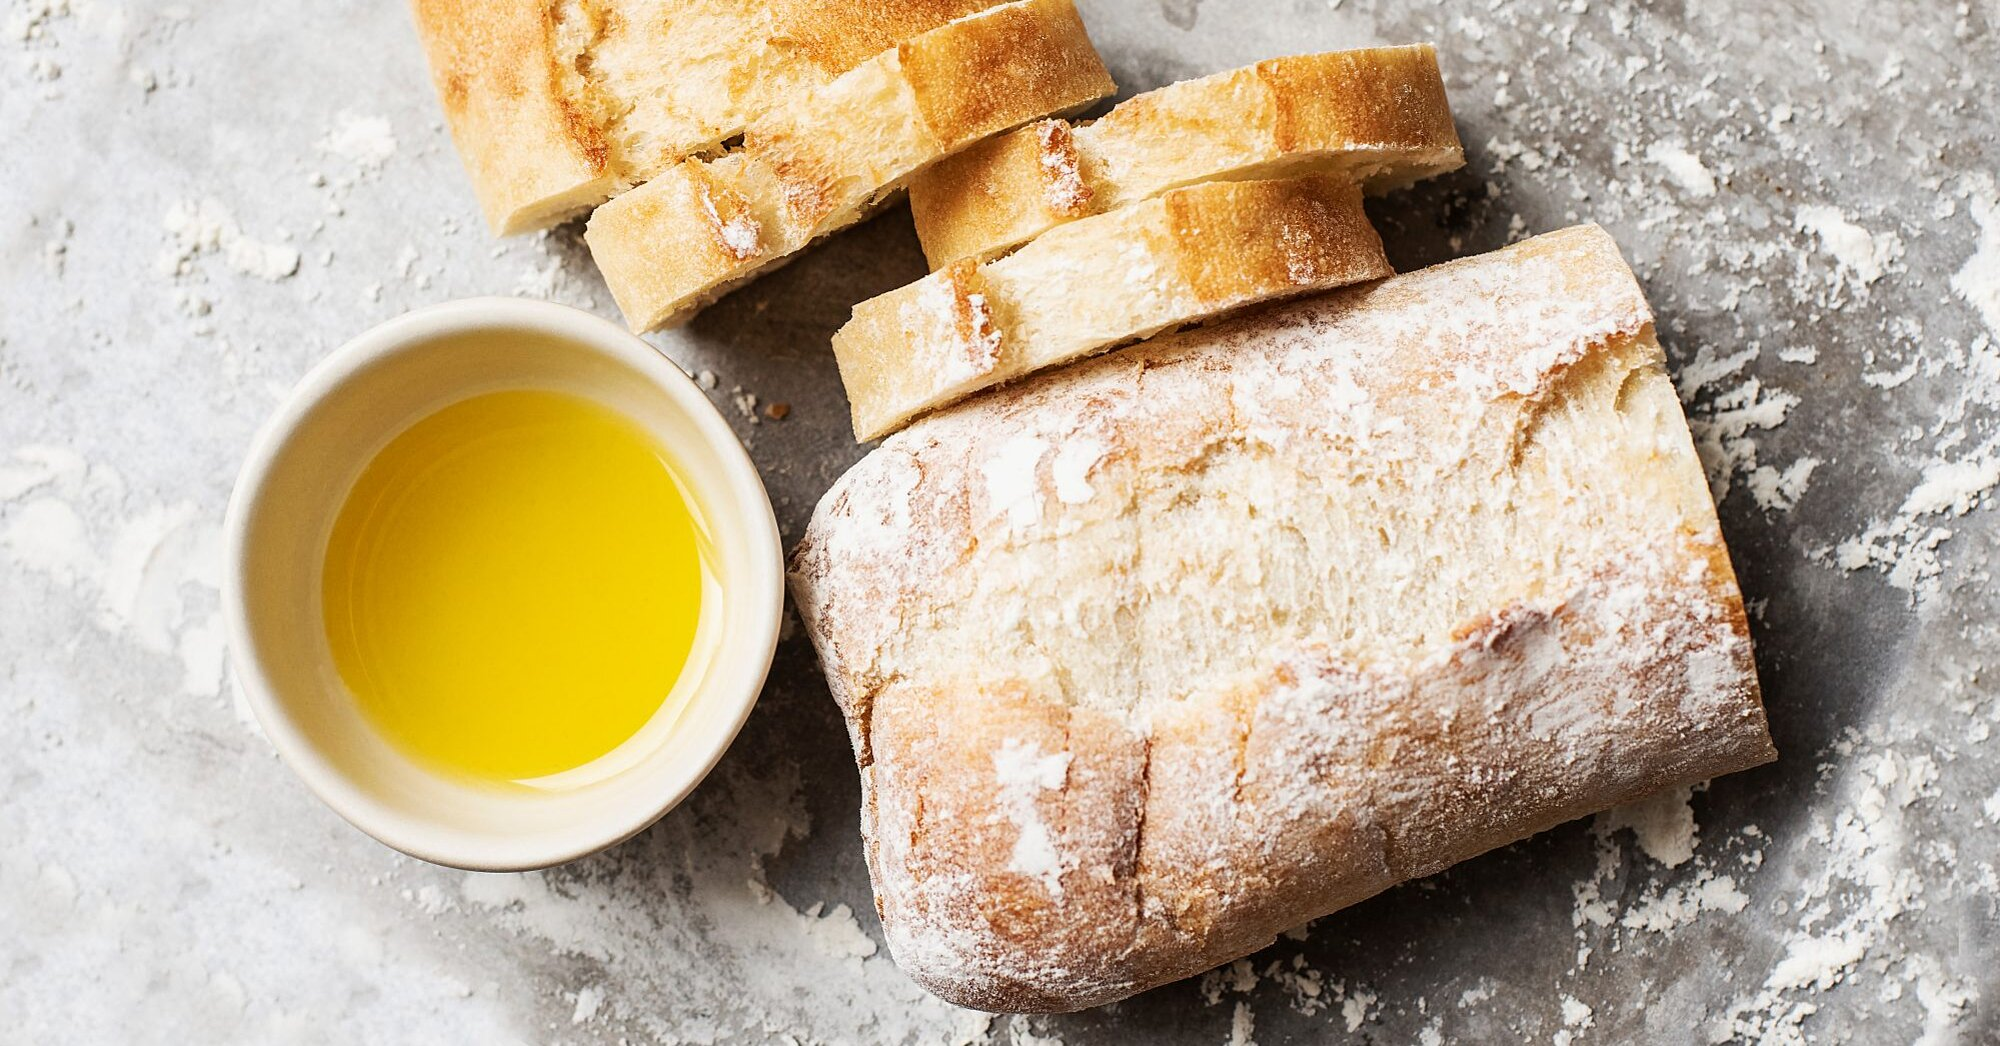 Short on Yeast? Here Are 3 Clever Ways You Can Bake Bread Without It